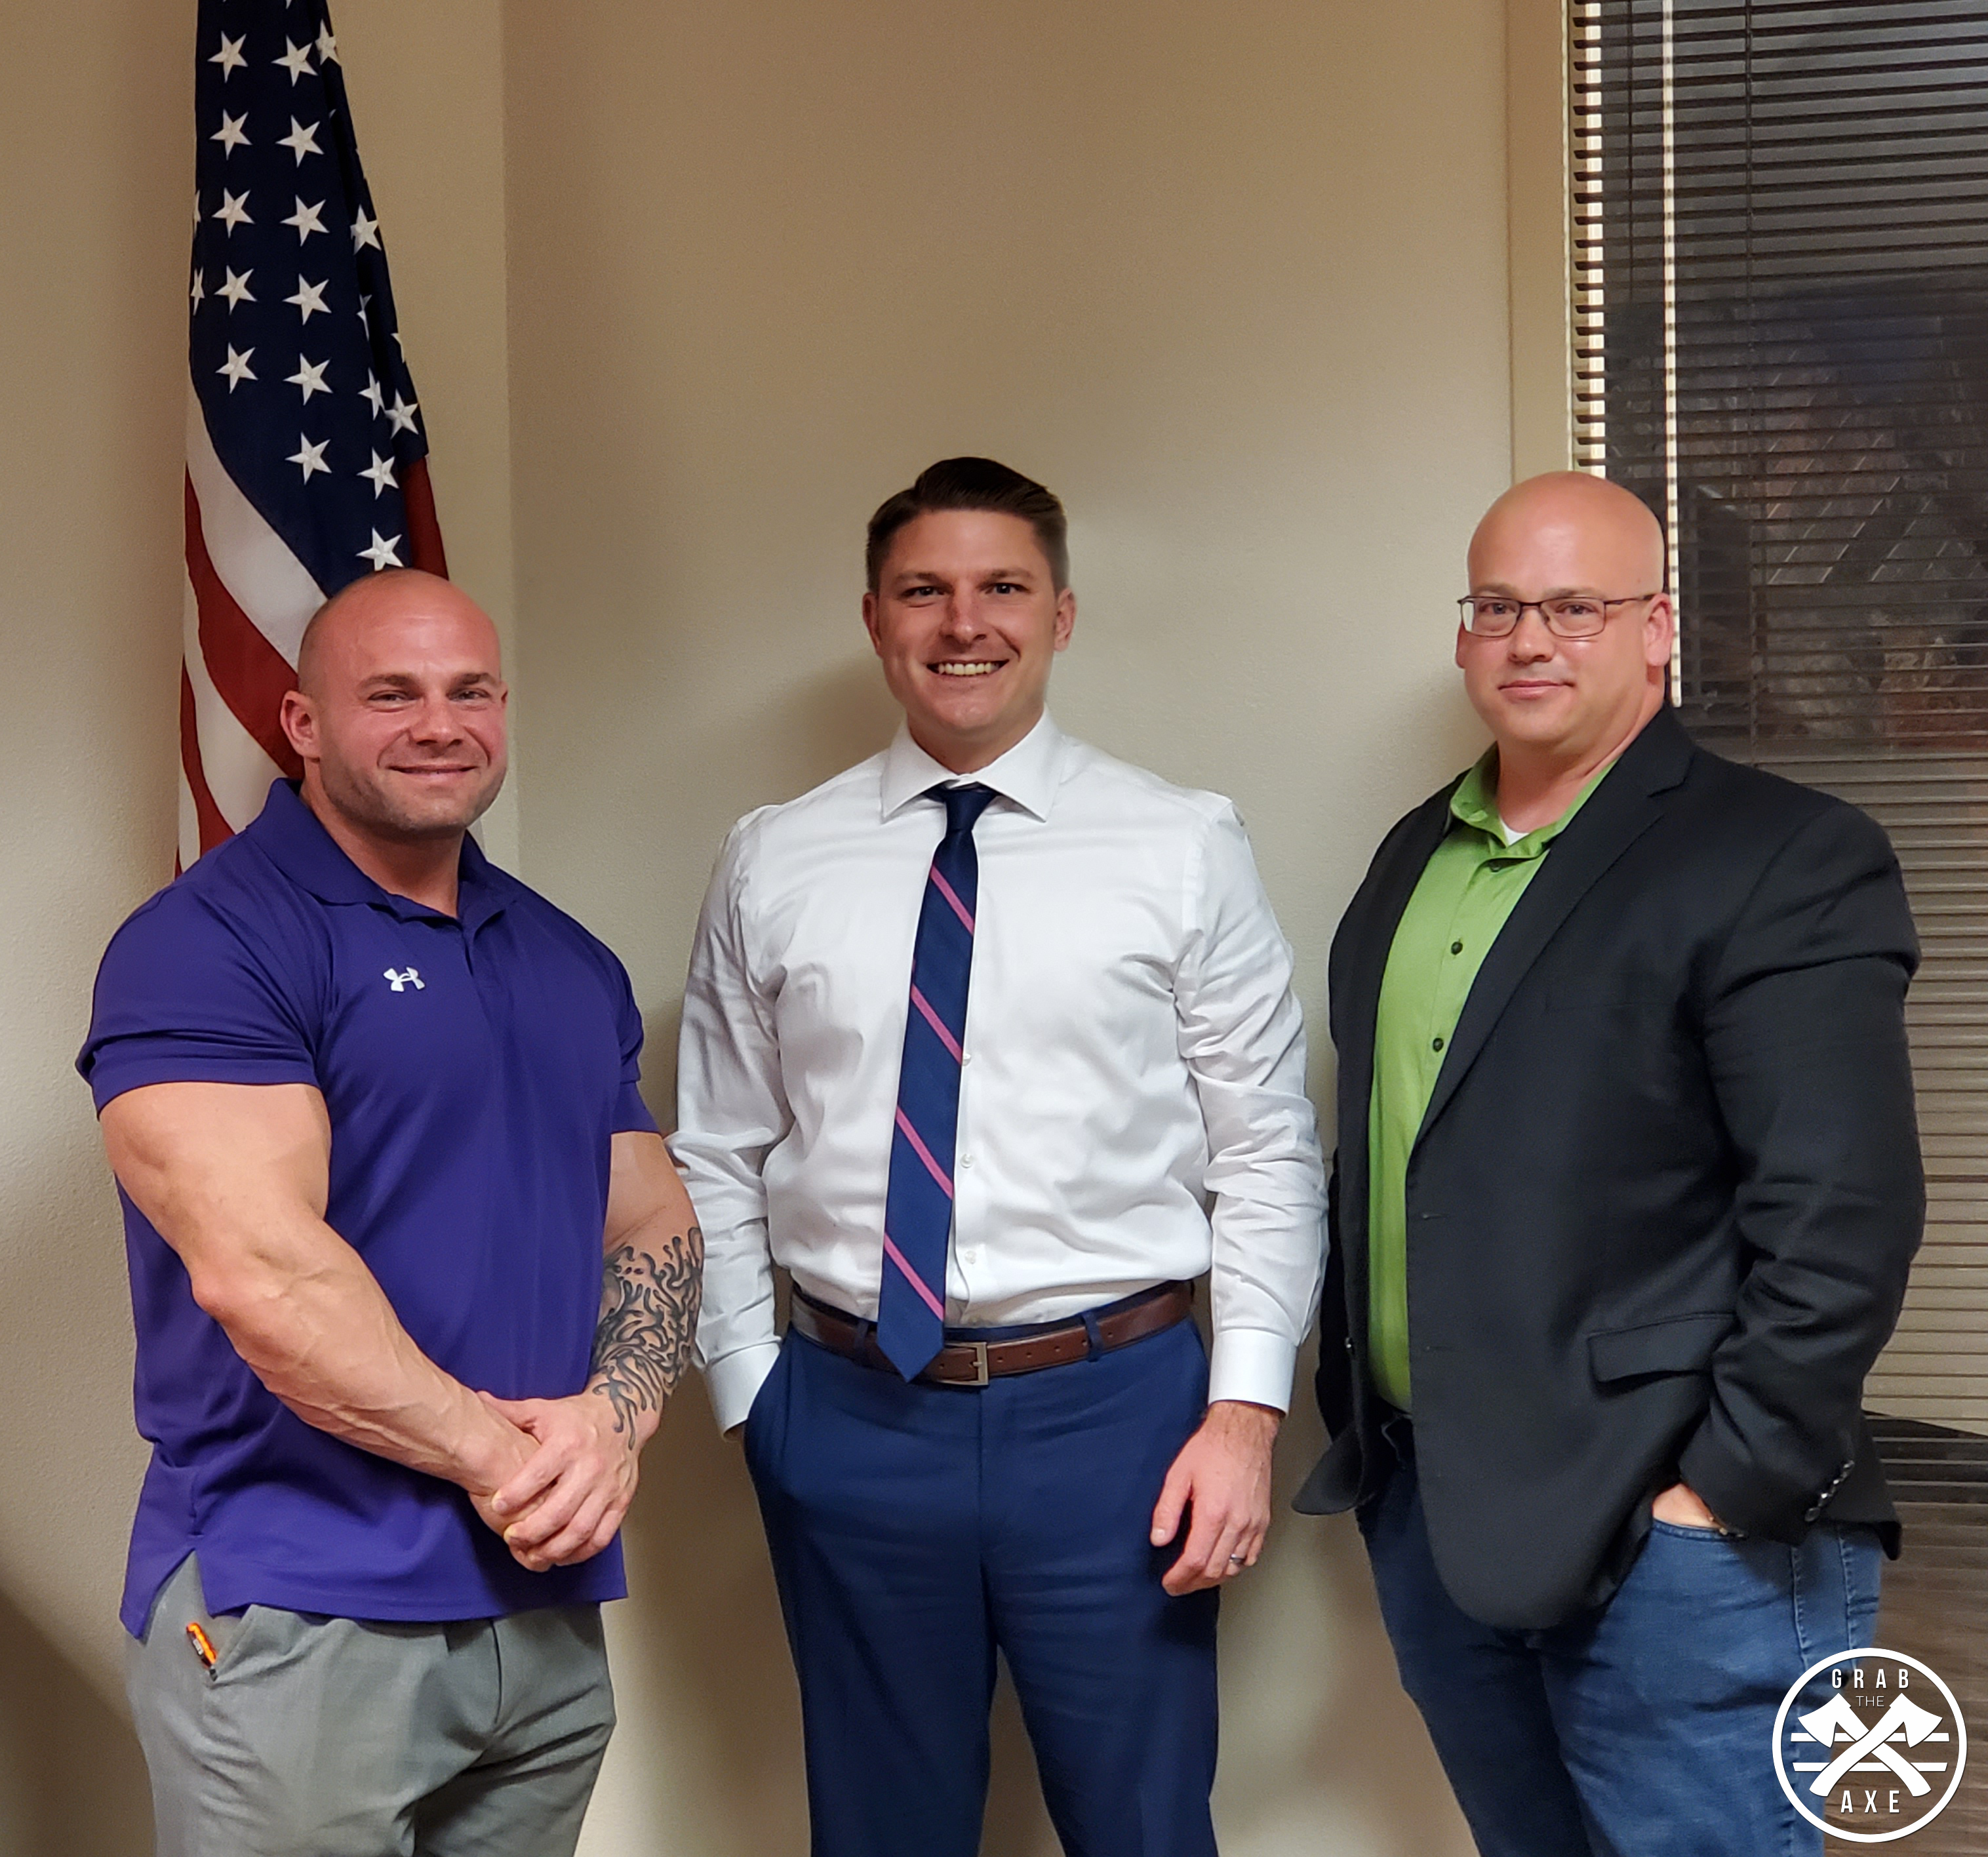 District Director Ken Fuellbier, from Arizona's 8th Congressional Representative Debbie Lesko's staff, meets with Grab The Axe and members of the (NSBA) National Small Business Association.